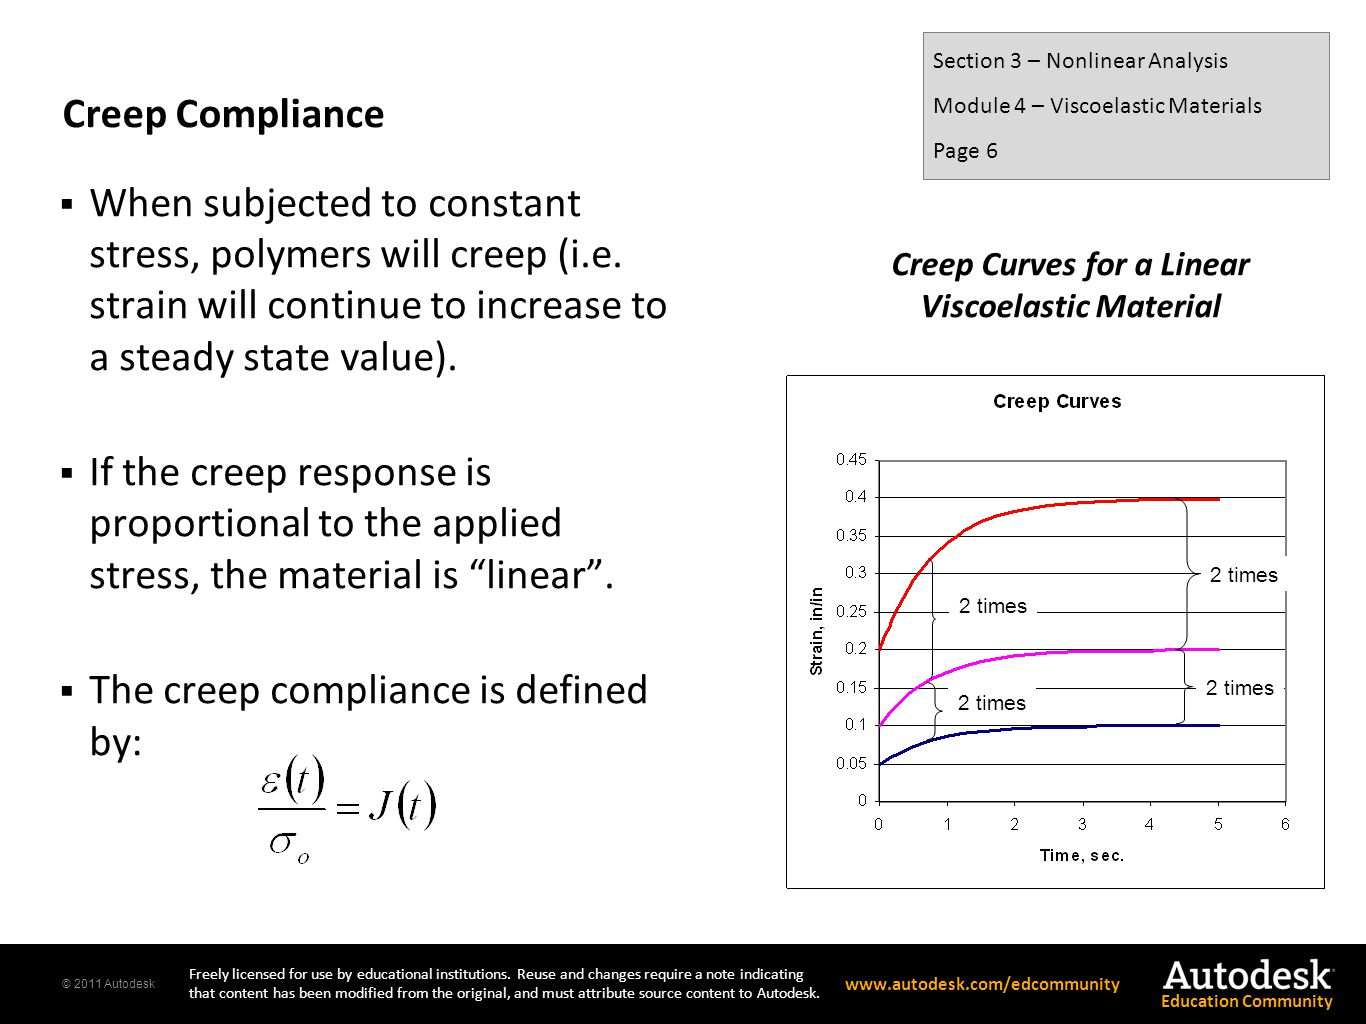 Creep Curves for a Linear Viscoelastic Material